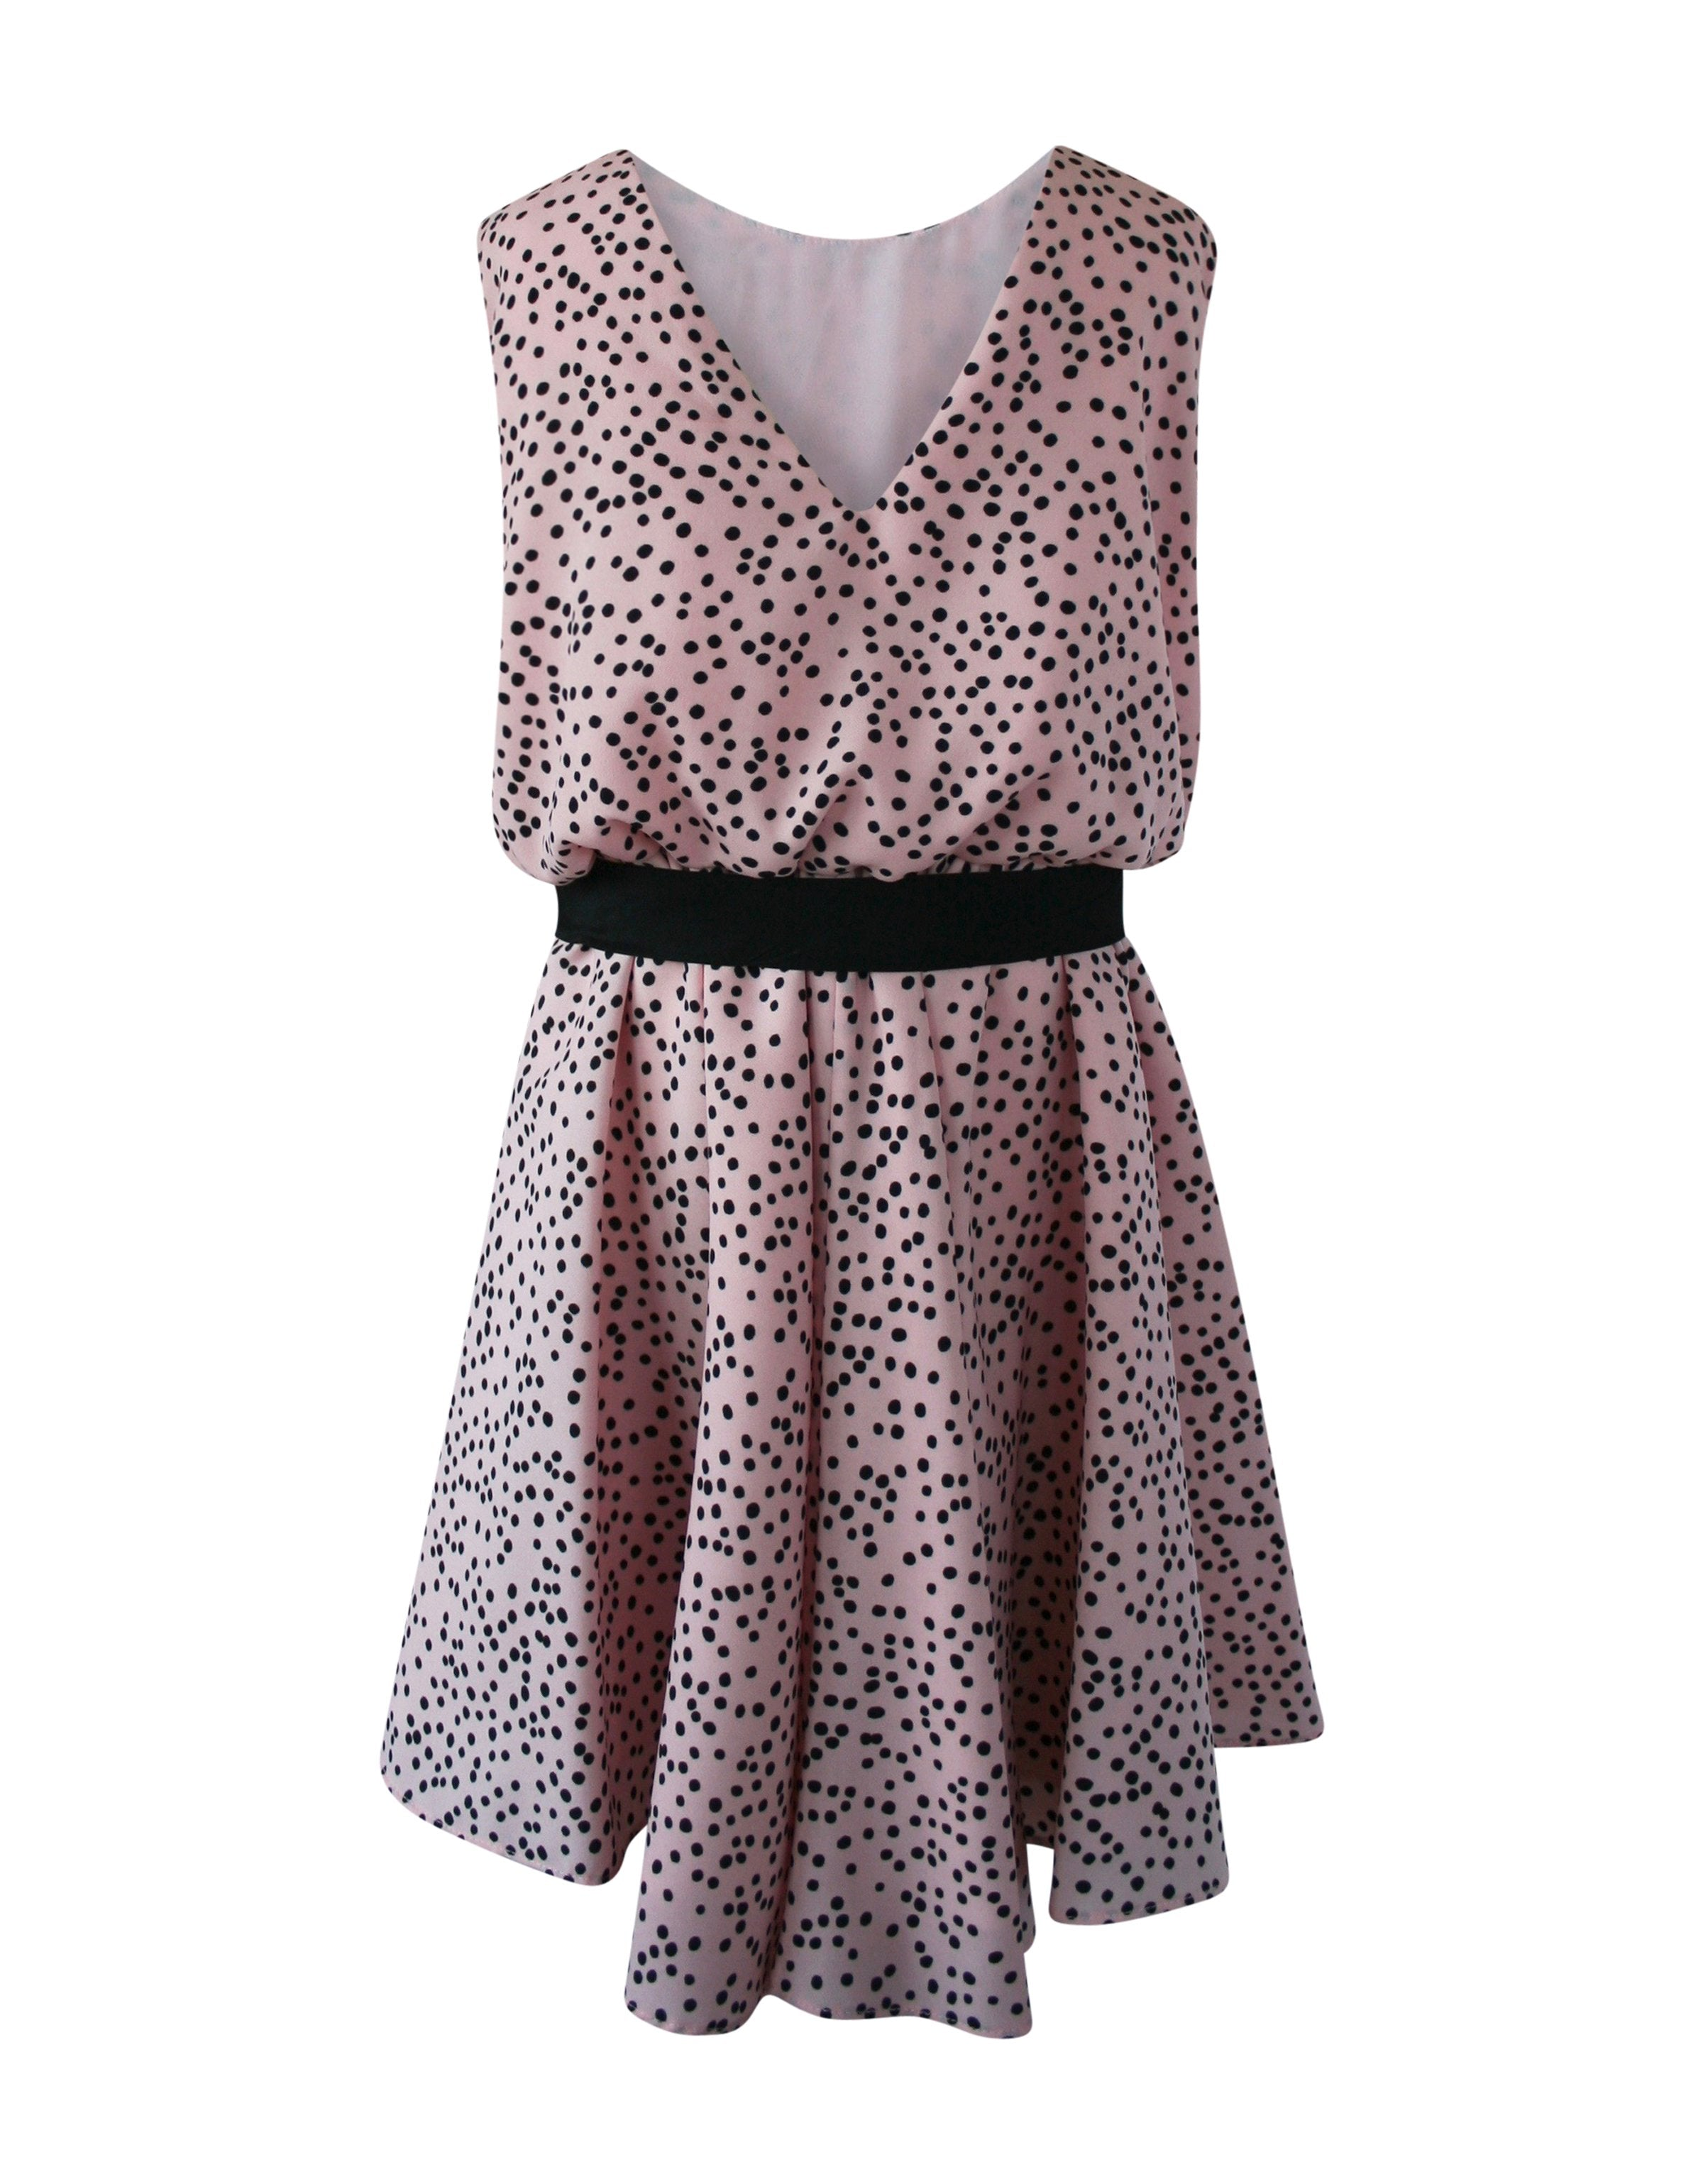 Helena and Harry Girl's Pink Dress with Black Dots and Tie Belt